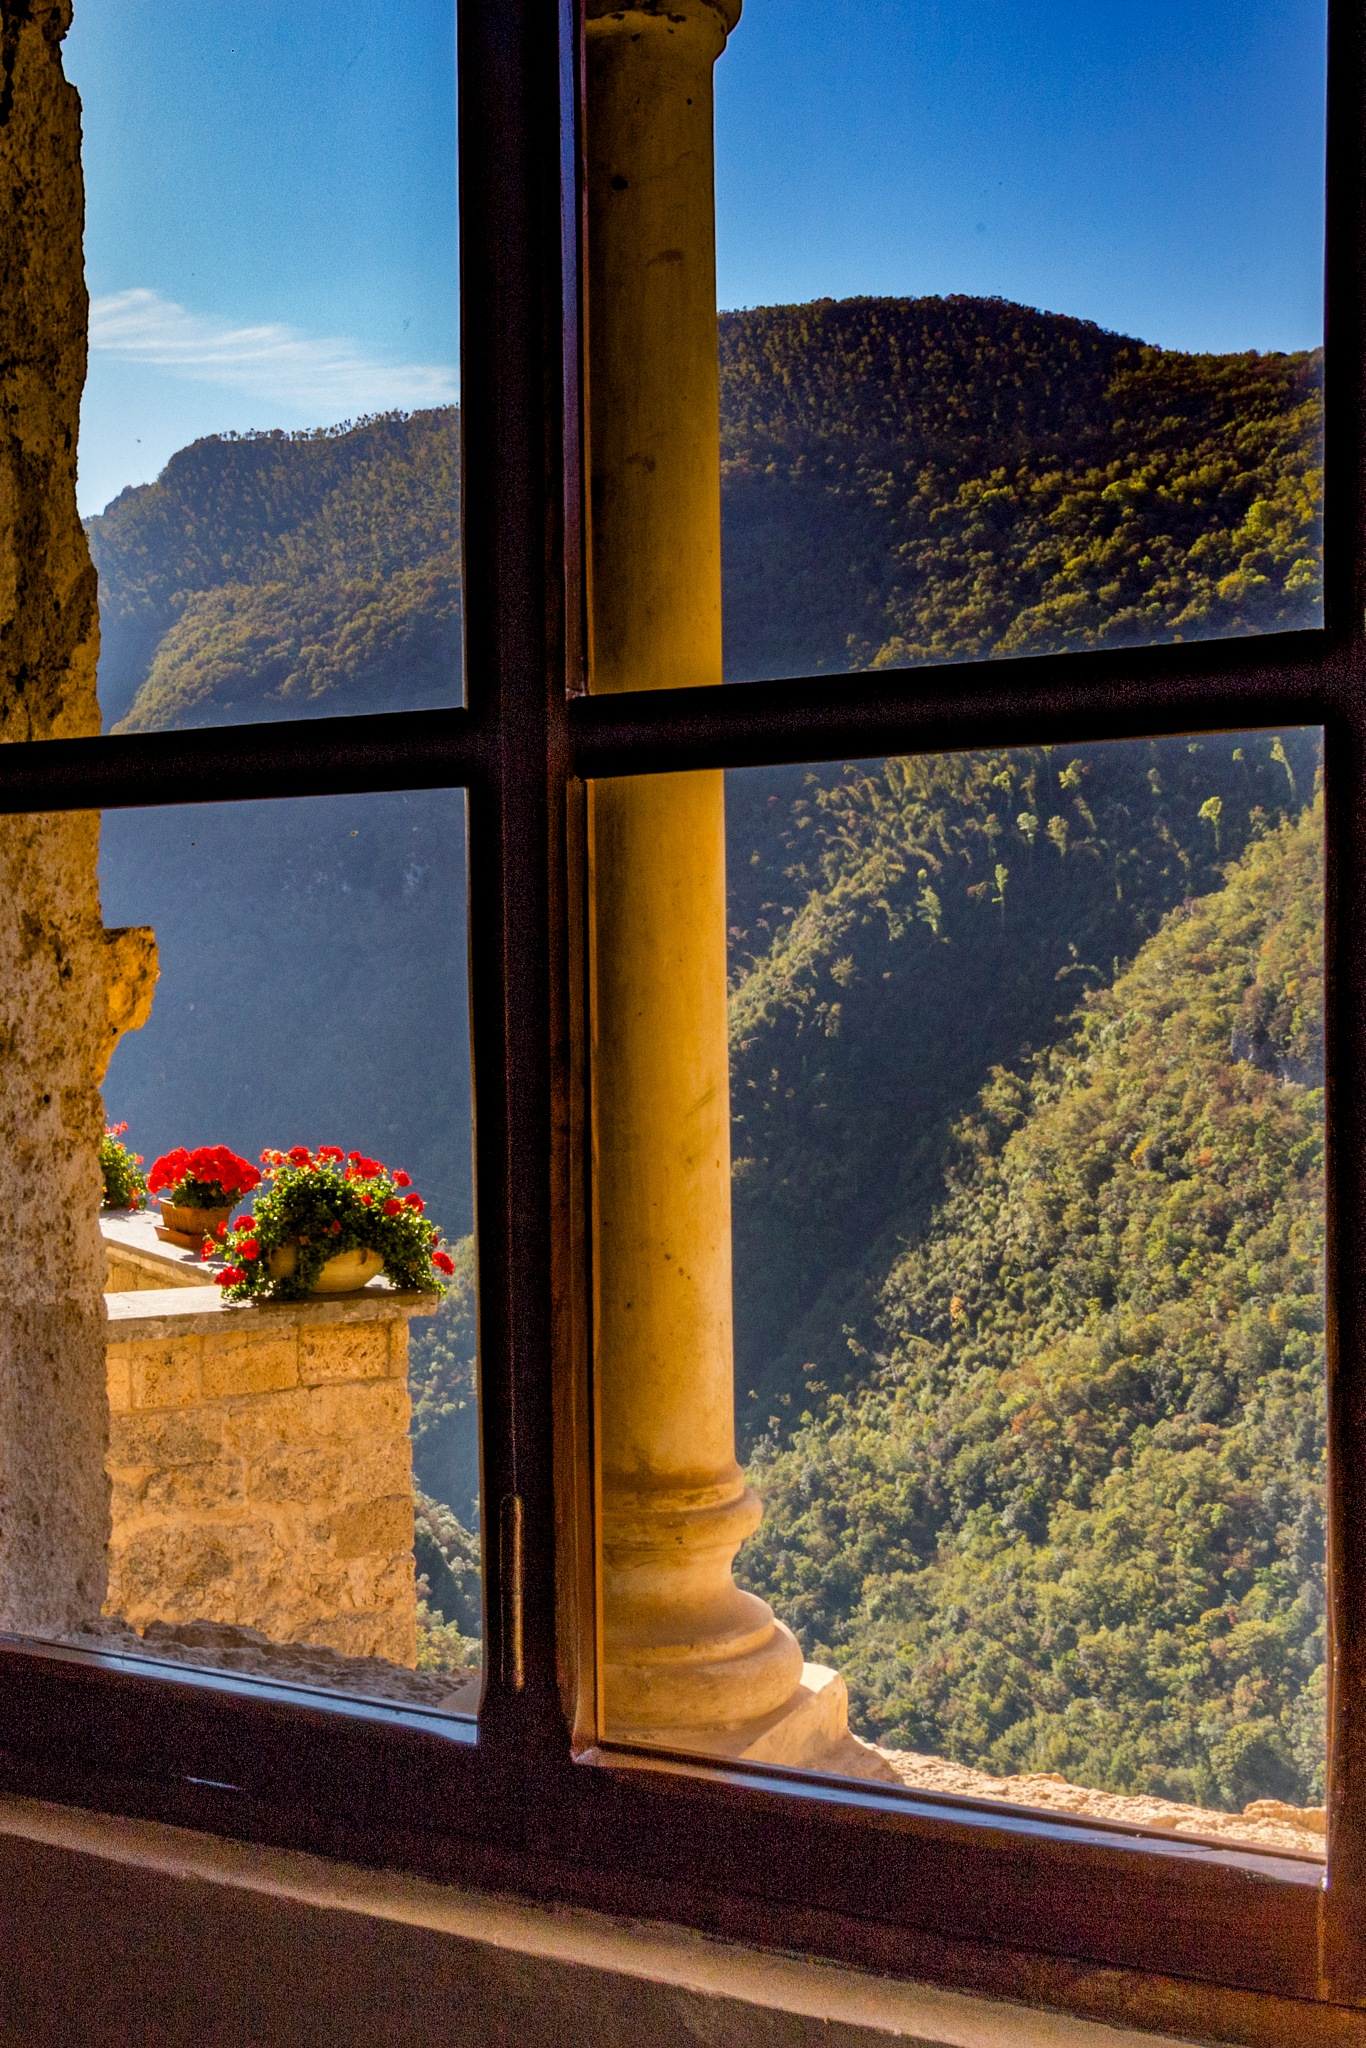 View From a Window in the Monastery in Subiaco by carljan w carlsson